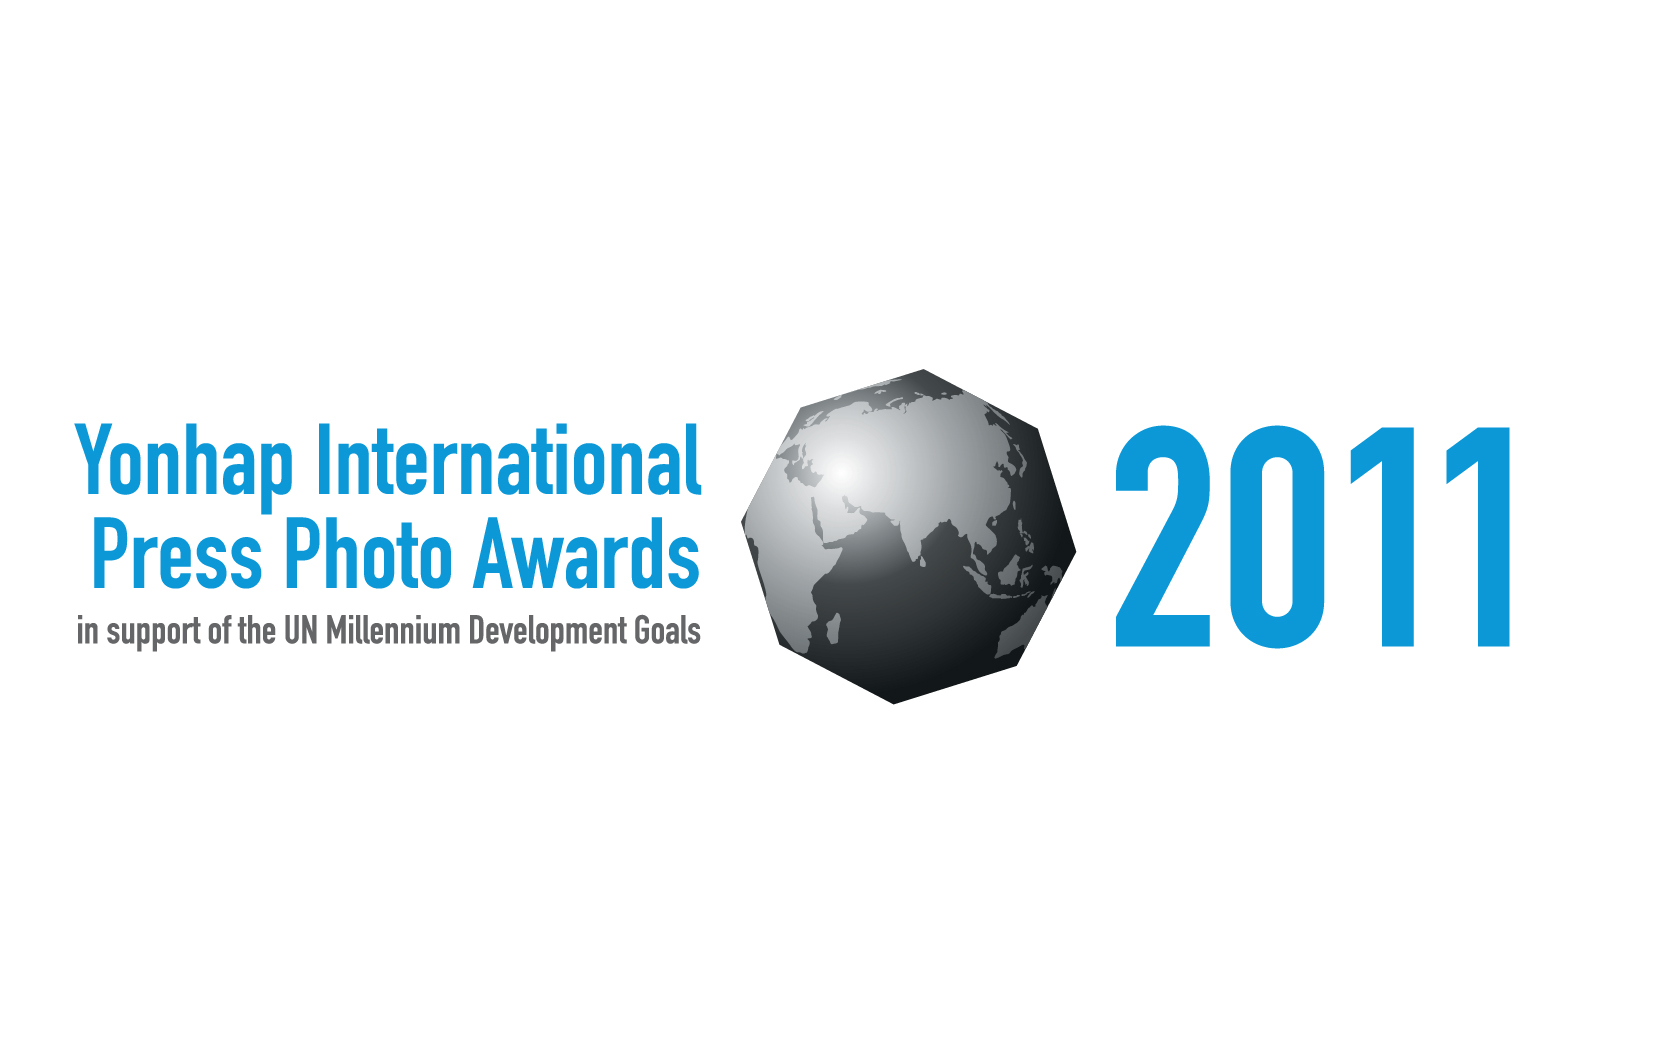 Yunhap international press photo awards